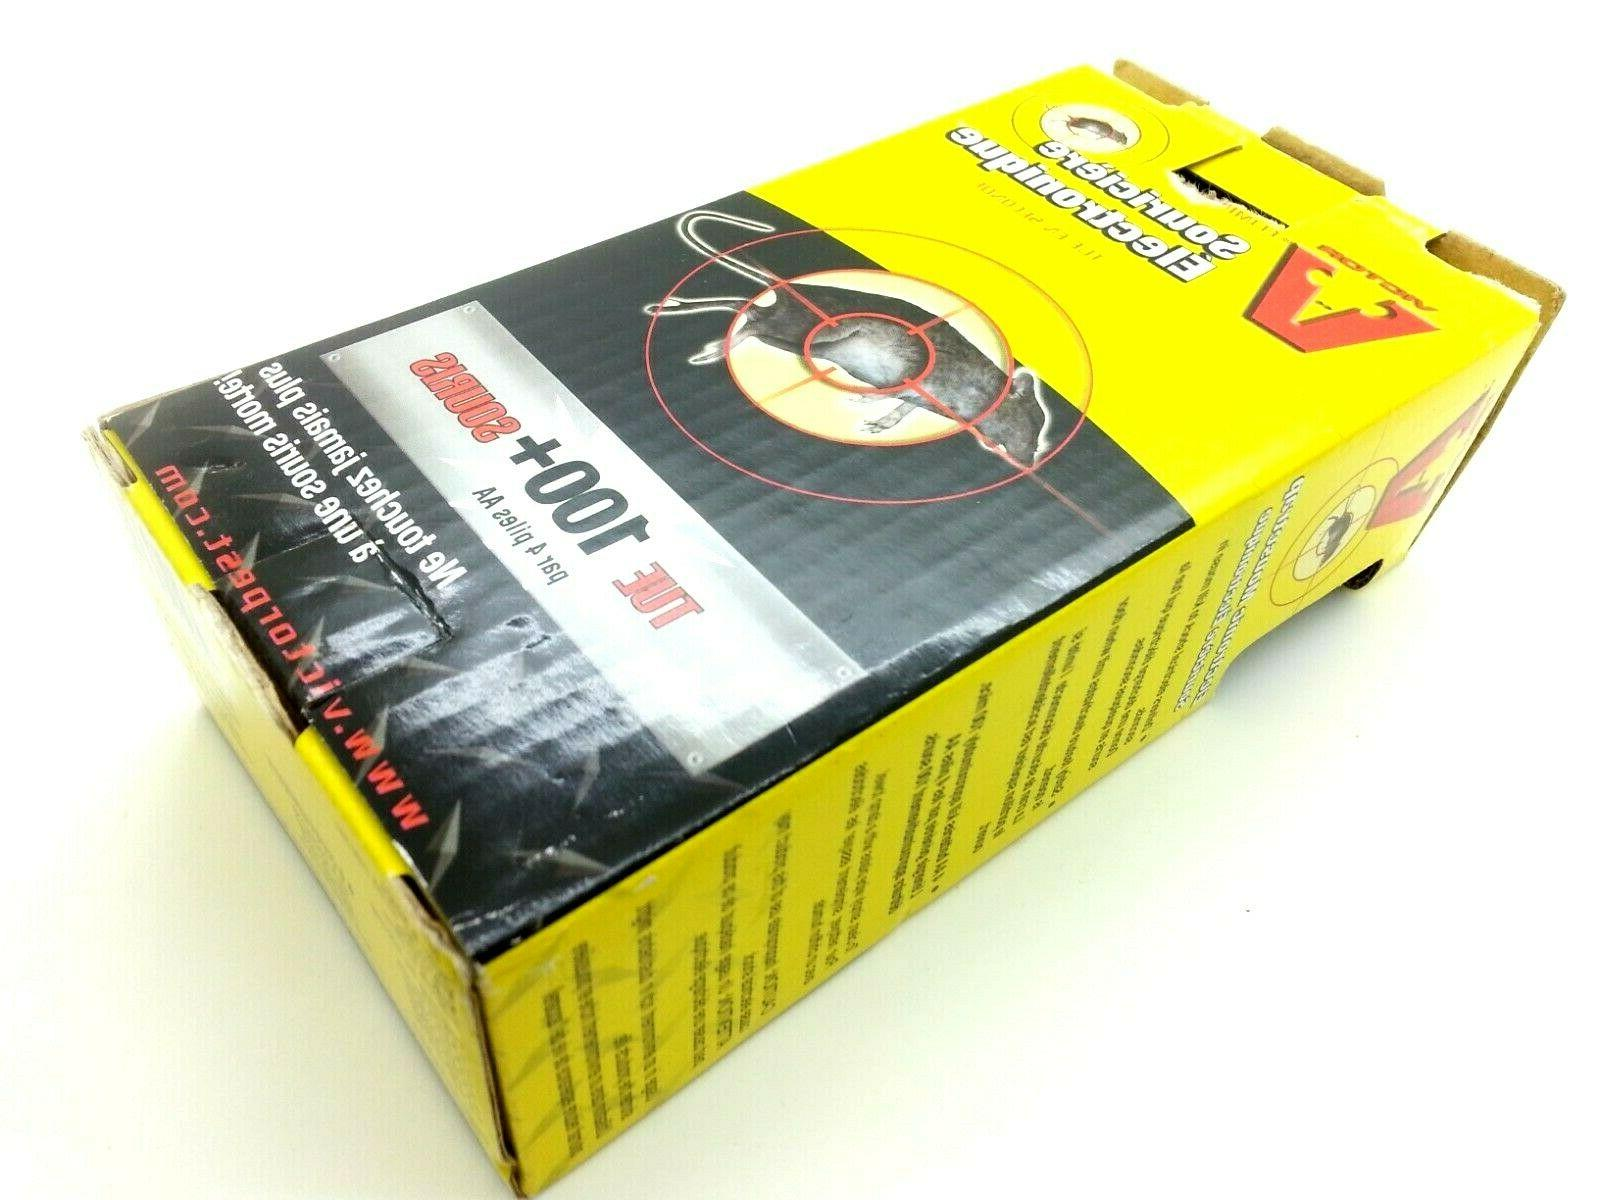 **VICTOR** Electronic Reusable Shock Mouse Trap